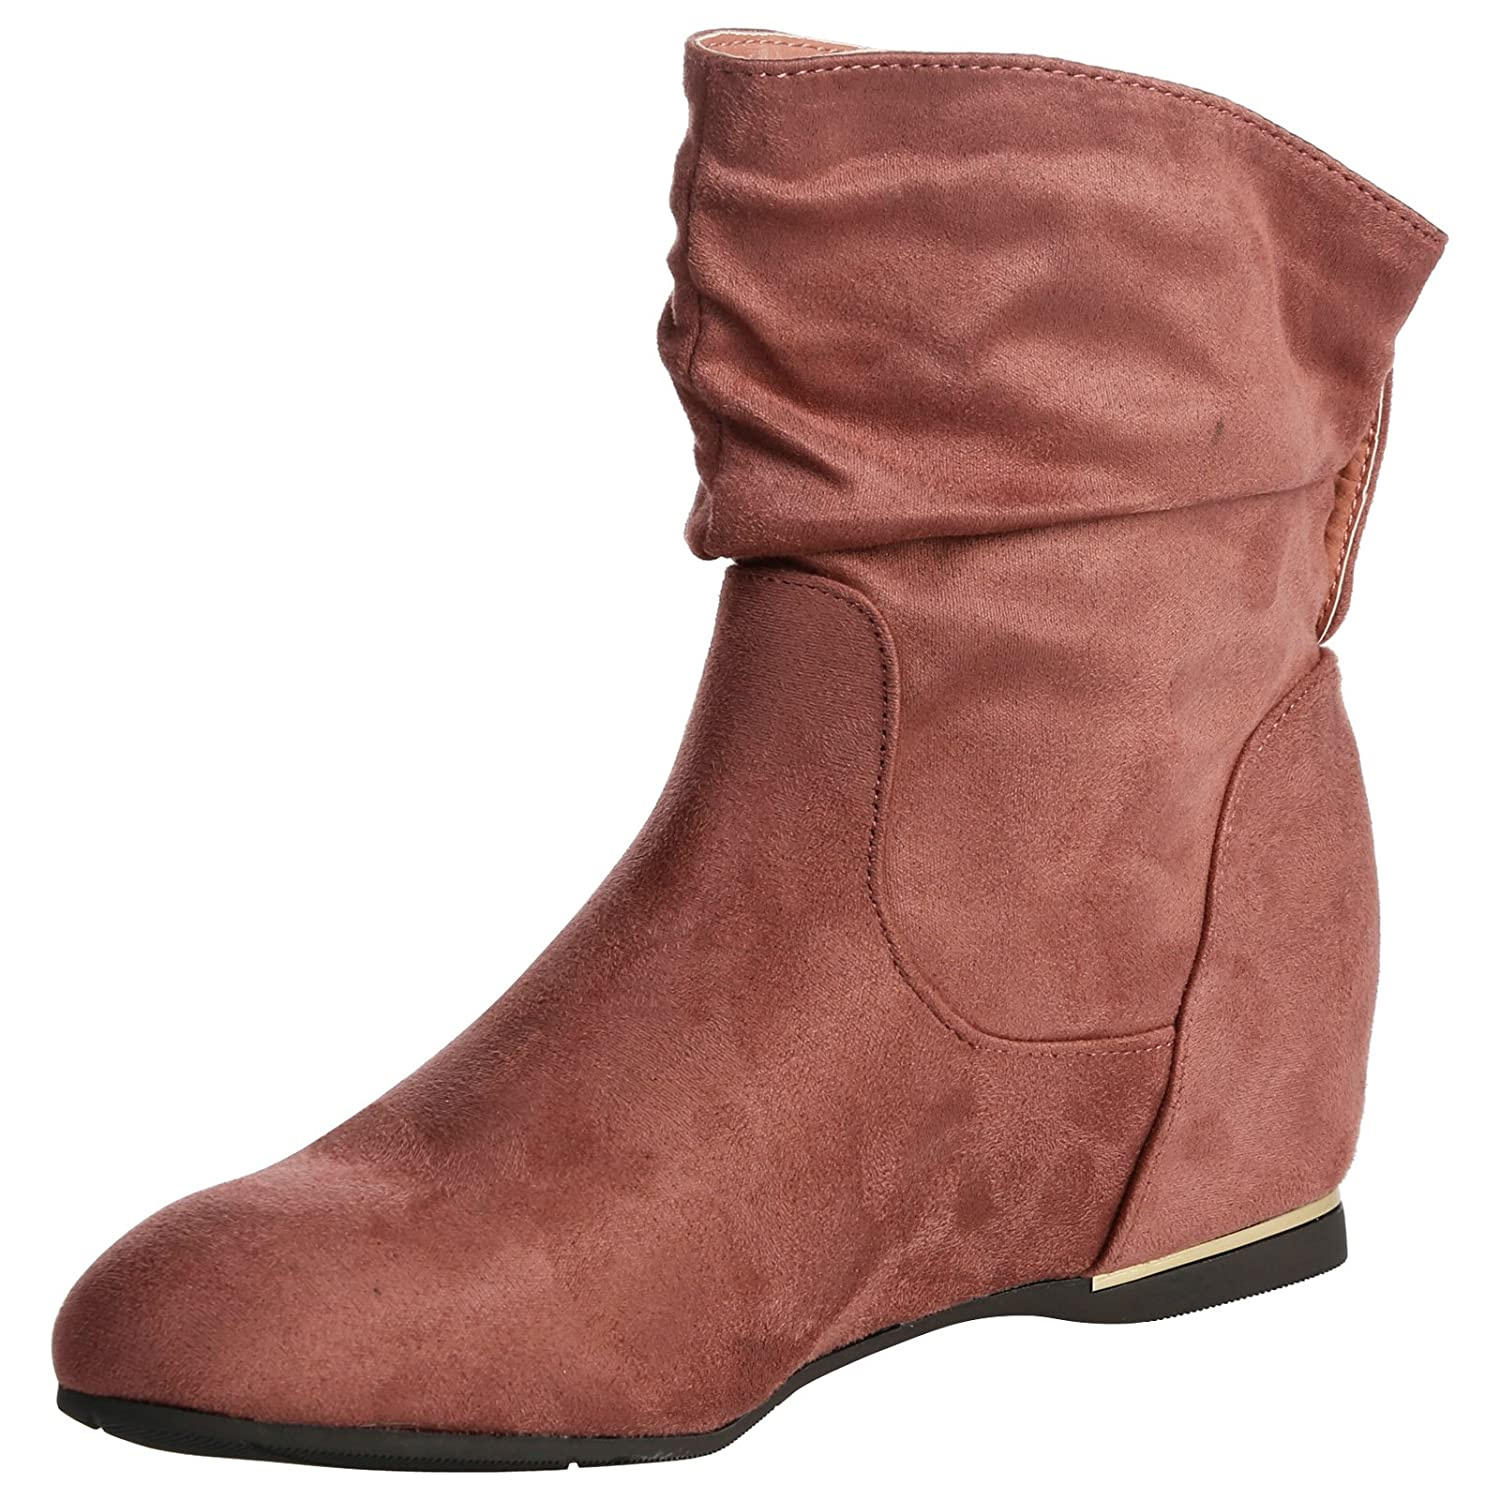 ByPublicDemand Daphne Womens Hidden Wedge Low Heel Slouch Ankle Boots:  Amazon.co.uk: Shoes & Bags